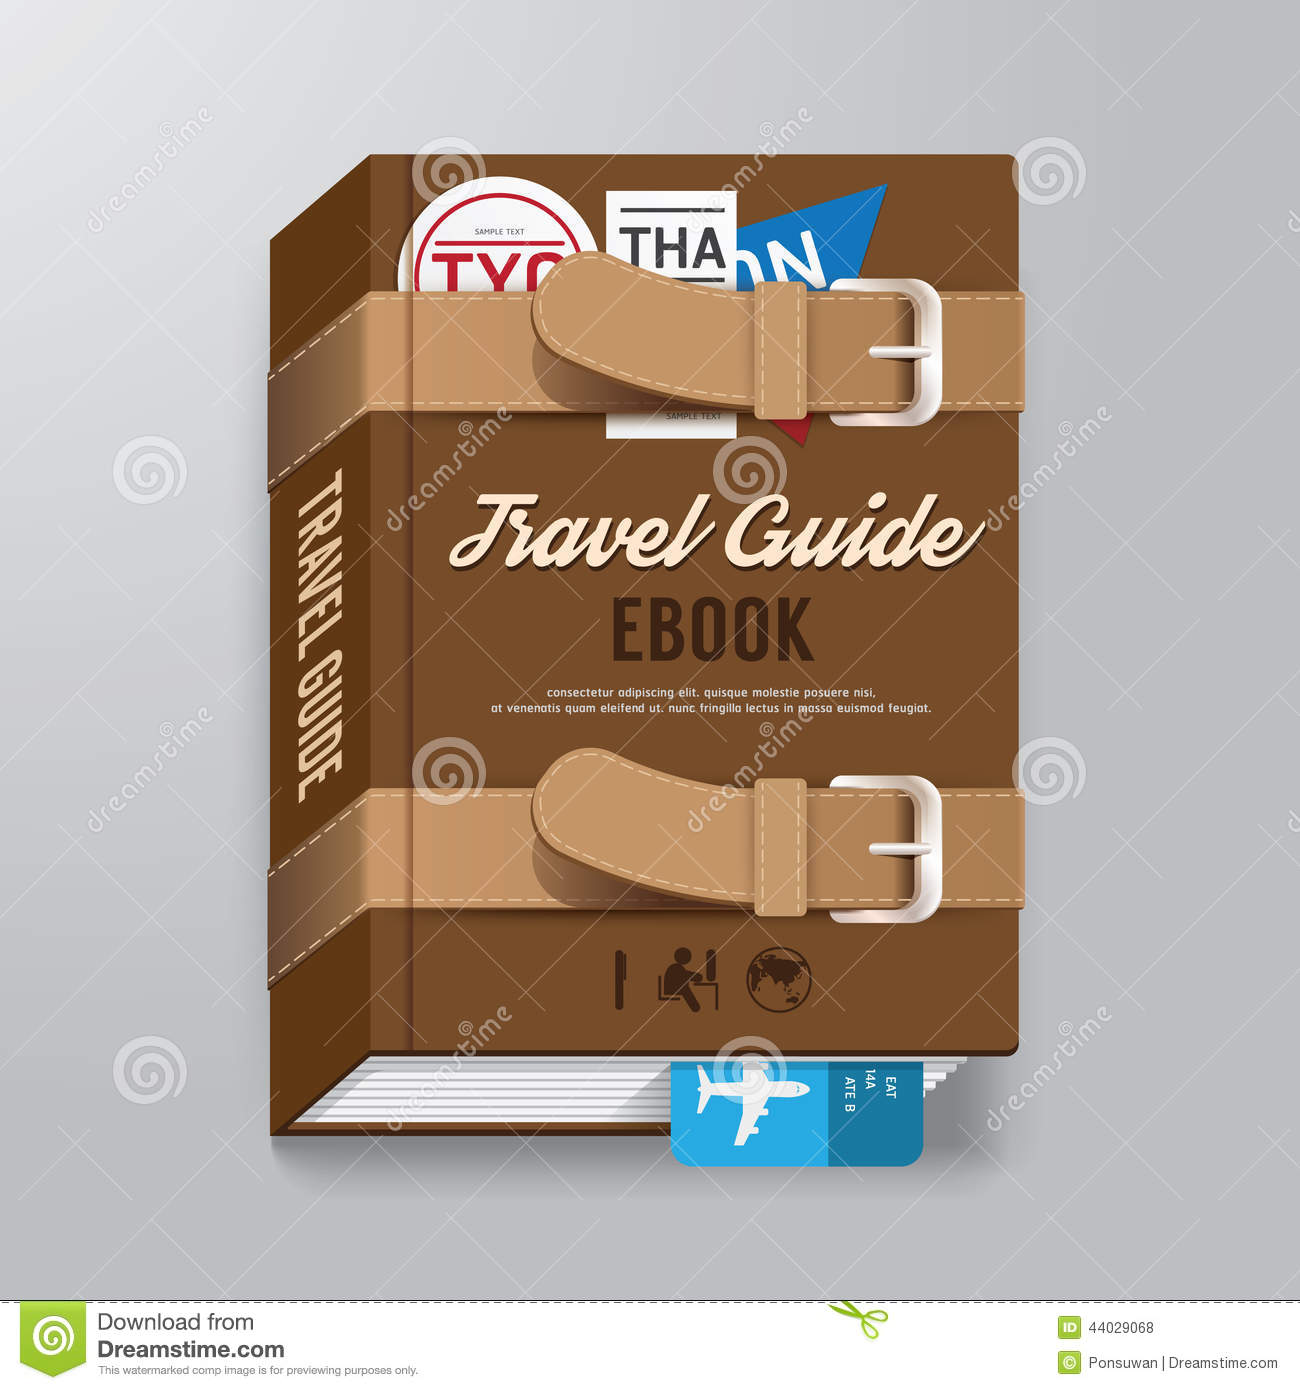 Book Cover Design Template Vector Illustration Free Download ~ Book cover travel guide design luggage concept template